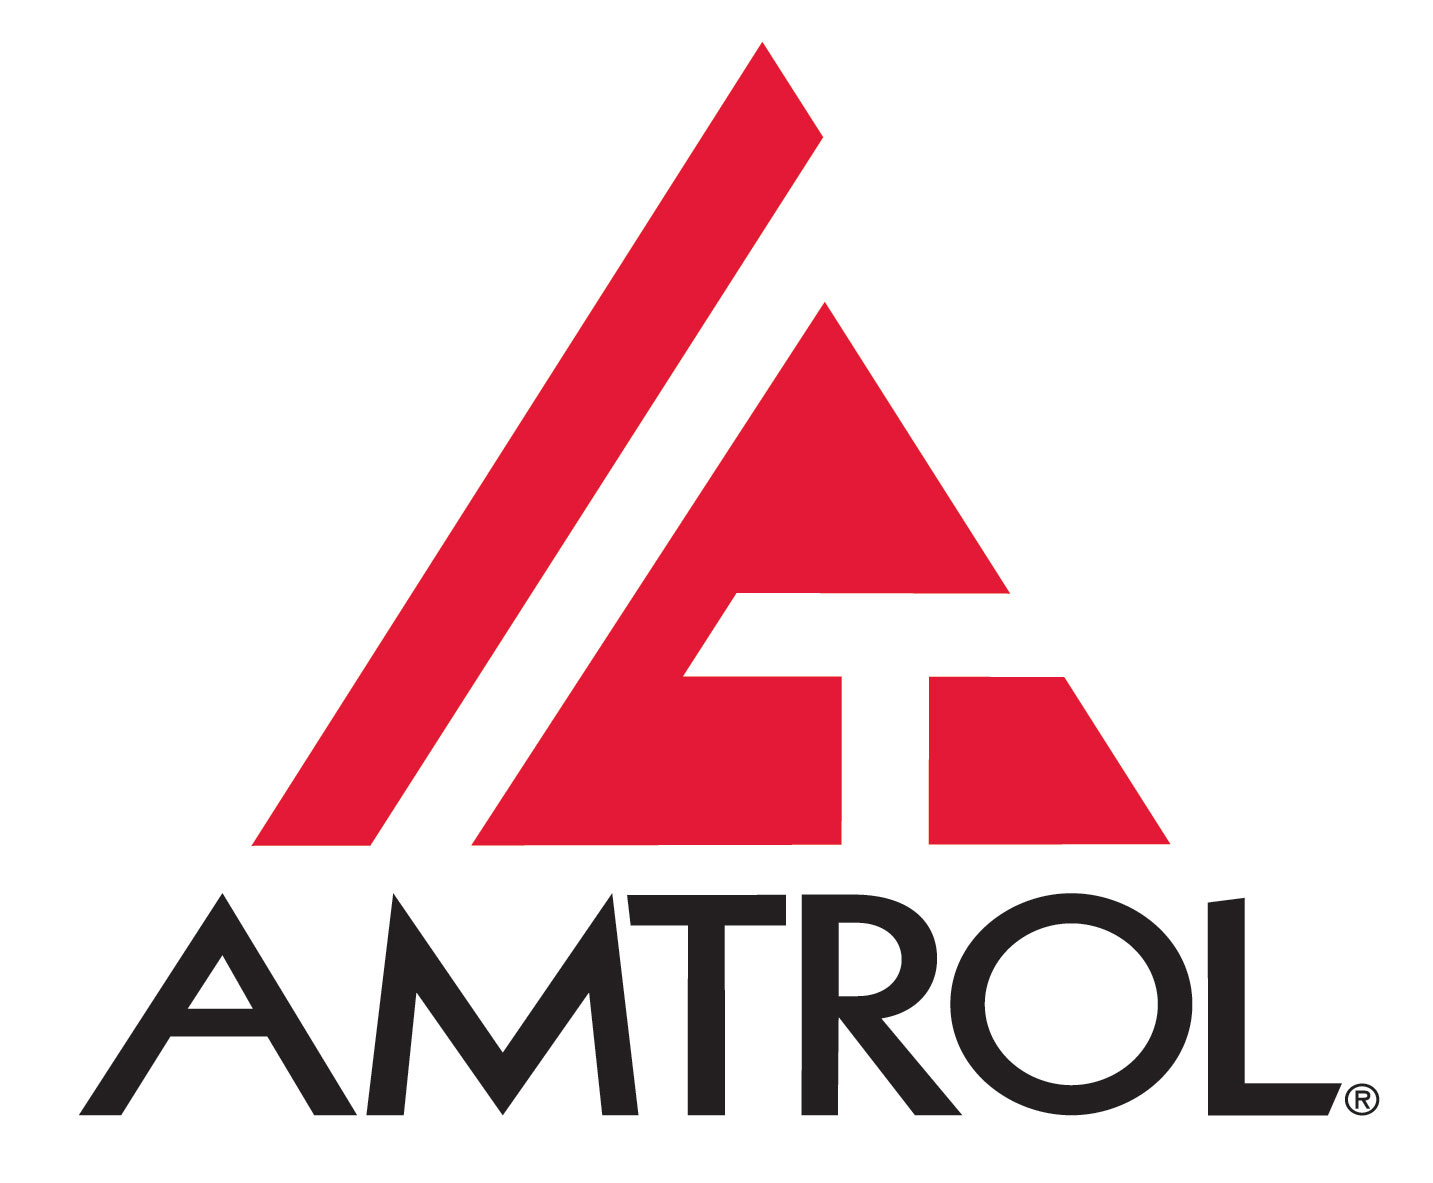 AMTROL products include water system solutions for storage, treatment, heating, expansion and flow control, along with a host of related HVAC products serving the residential, commercial, and industrial markets